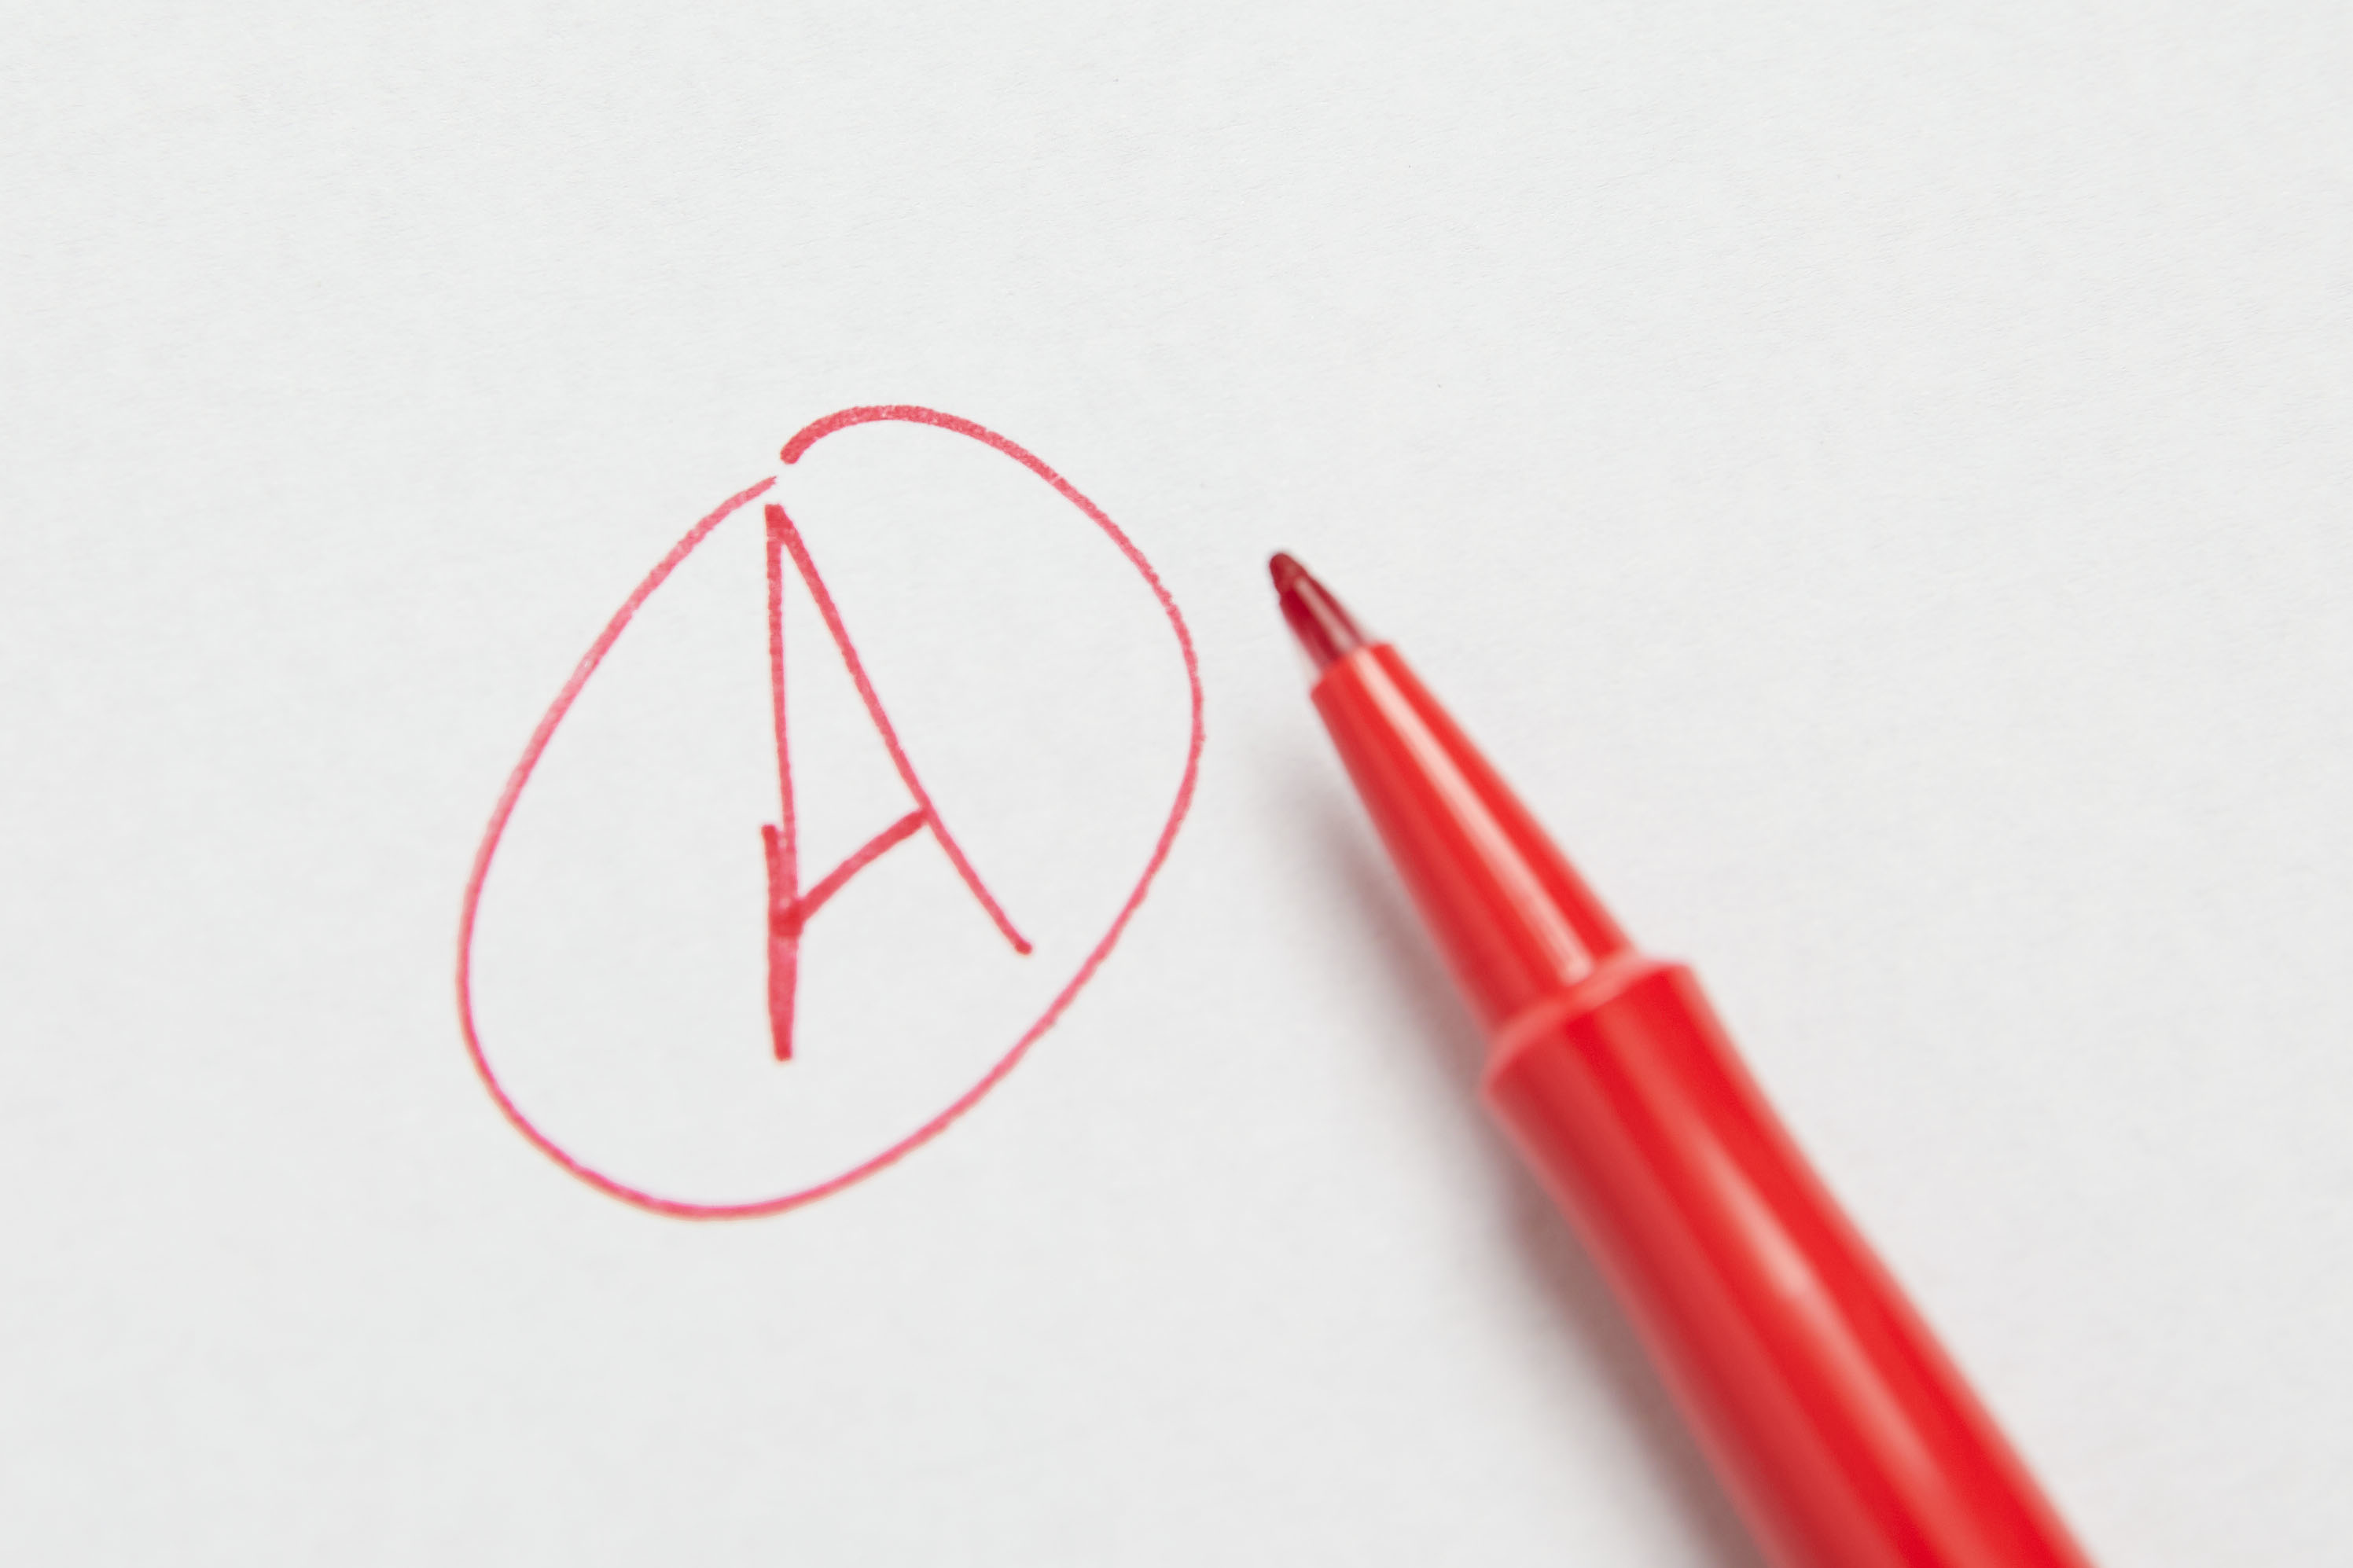 Grading Classical Brand Archetypes for Credit Unions